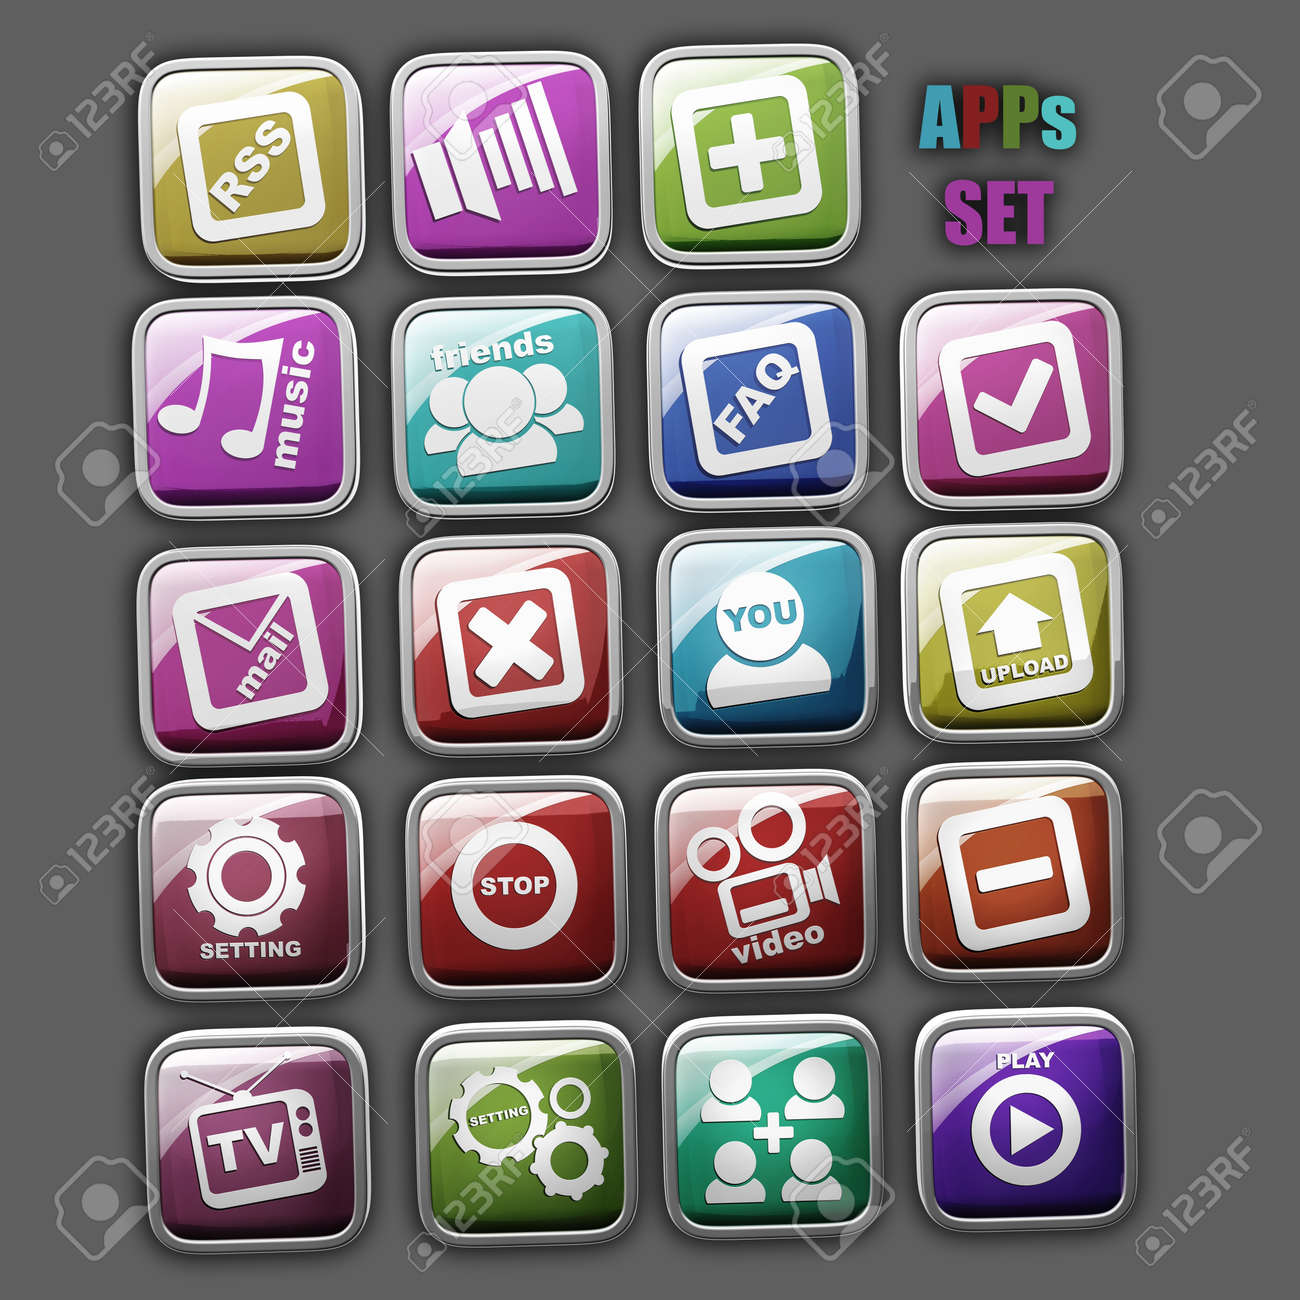 APPS set icons isolated High resolution 3d render Stock Photo - 22212208